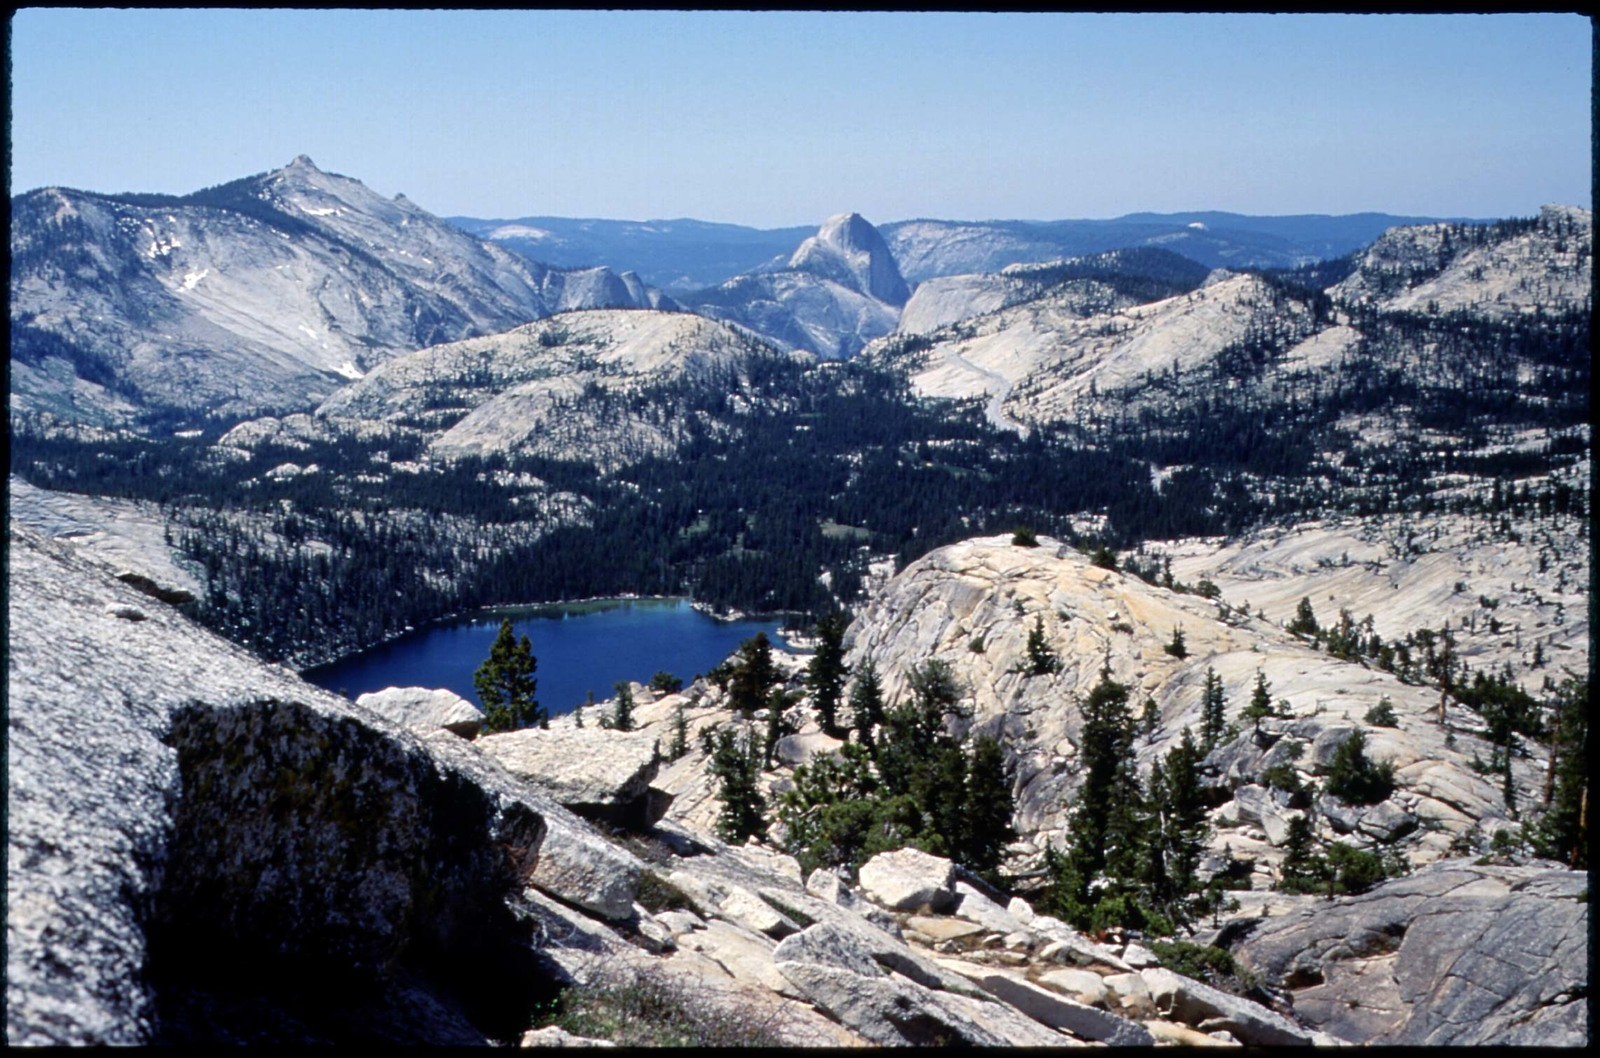 Library of Environmental Images, Office of Research and Development (ORD), September 1996 - Scenic/General - Tenaya Lake (Yosemite National Park, CA)